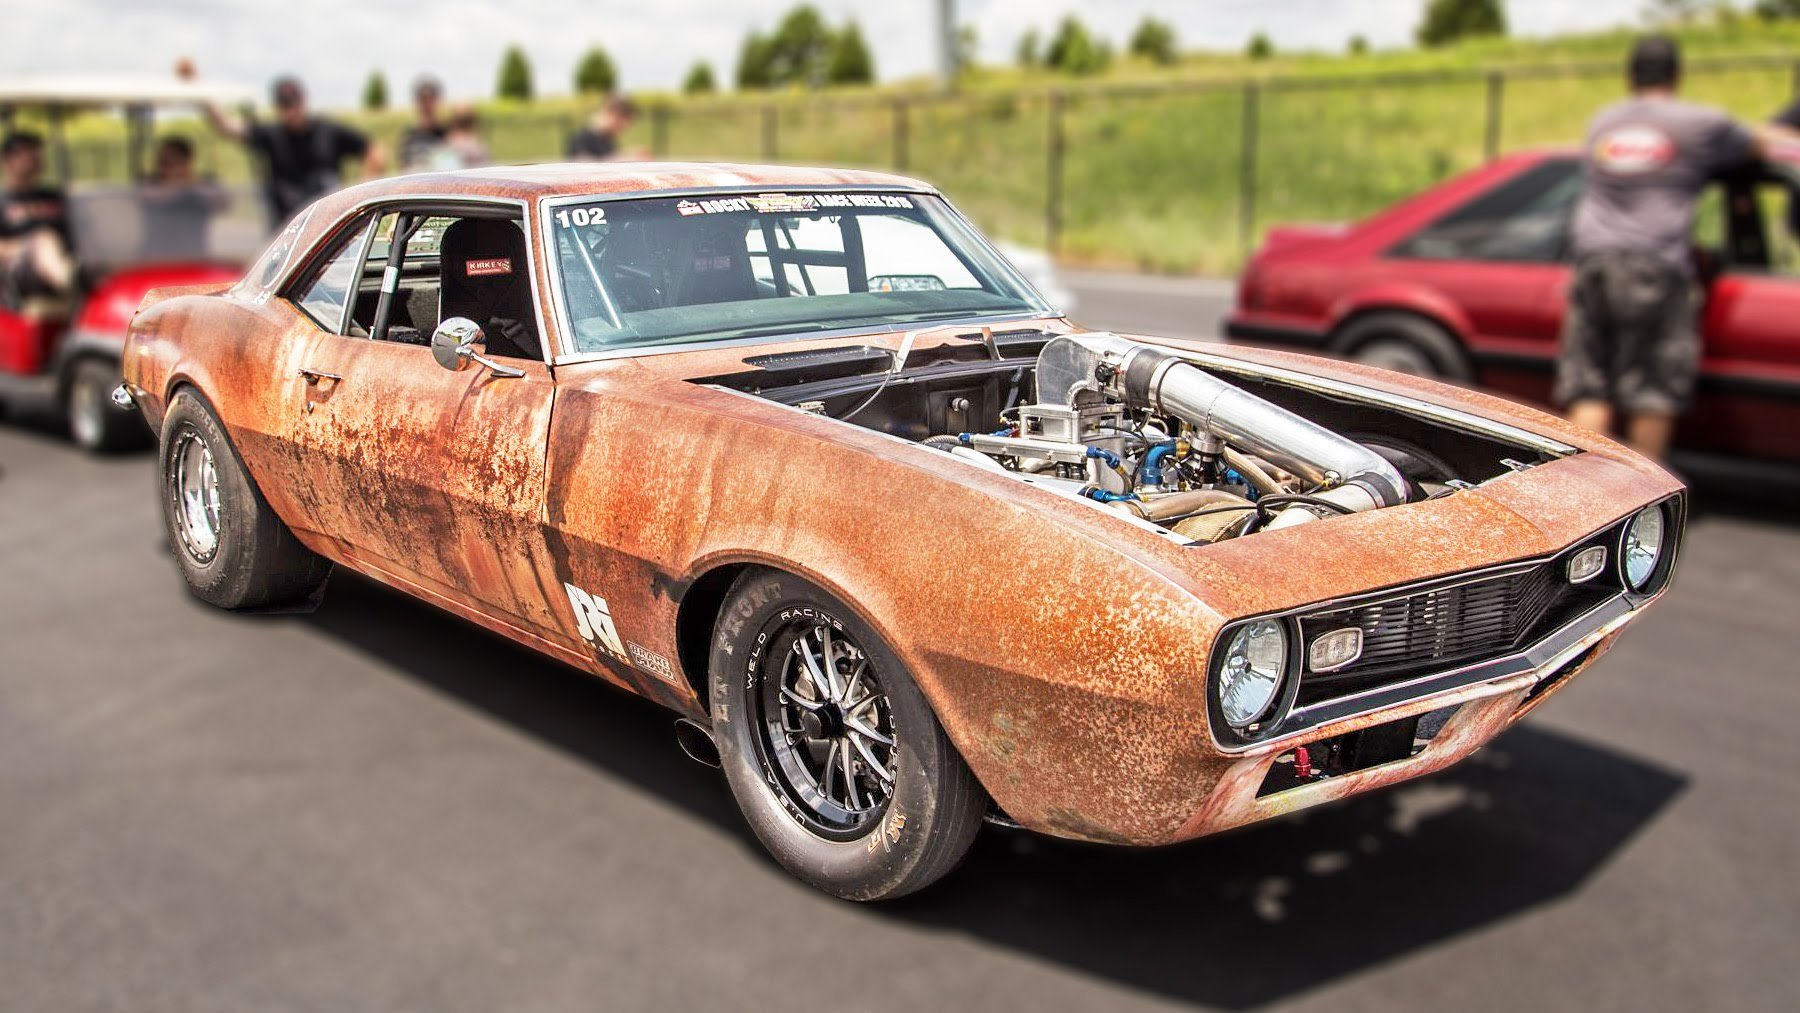 Muscle Cars Archives - LegendaryFinds